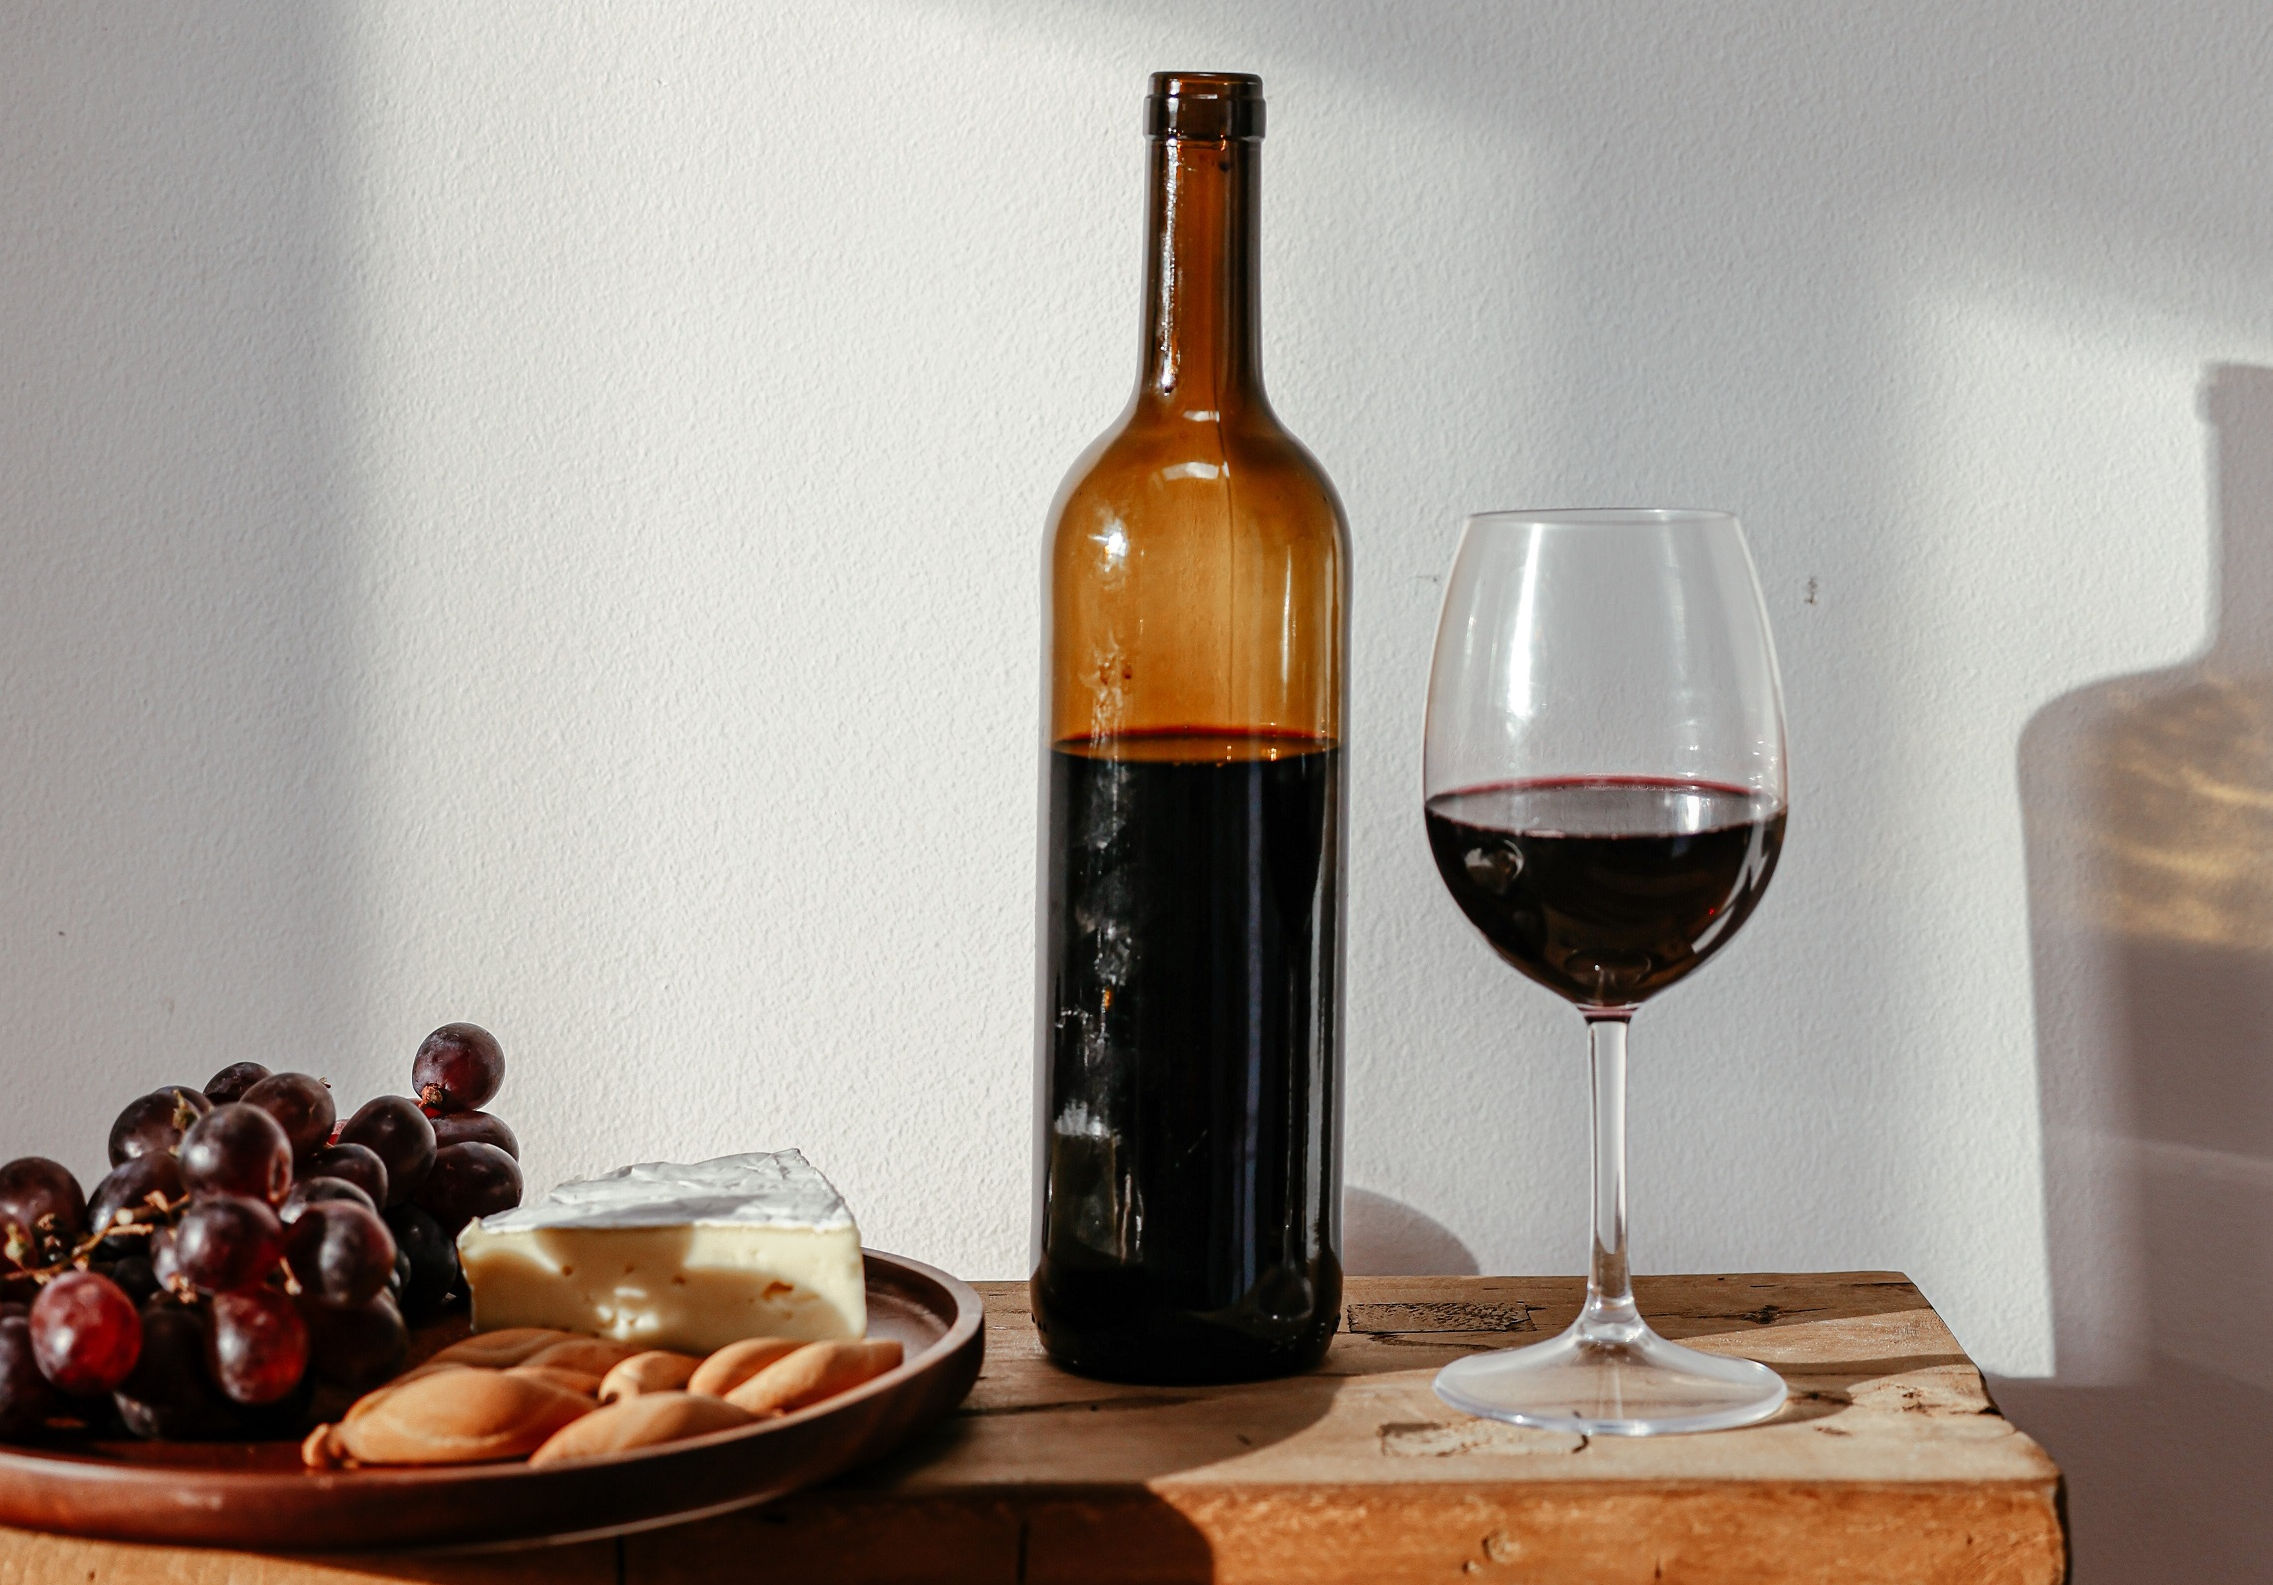 What are the benefits of red wine?